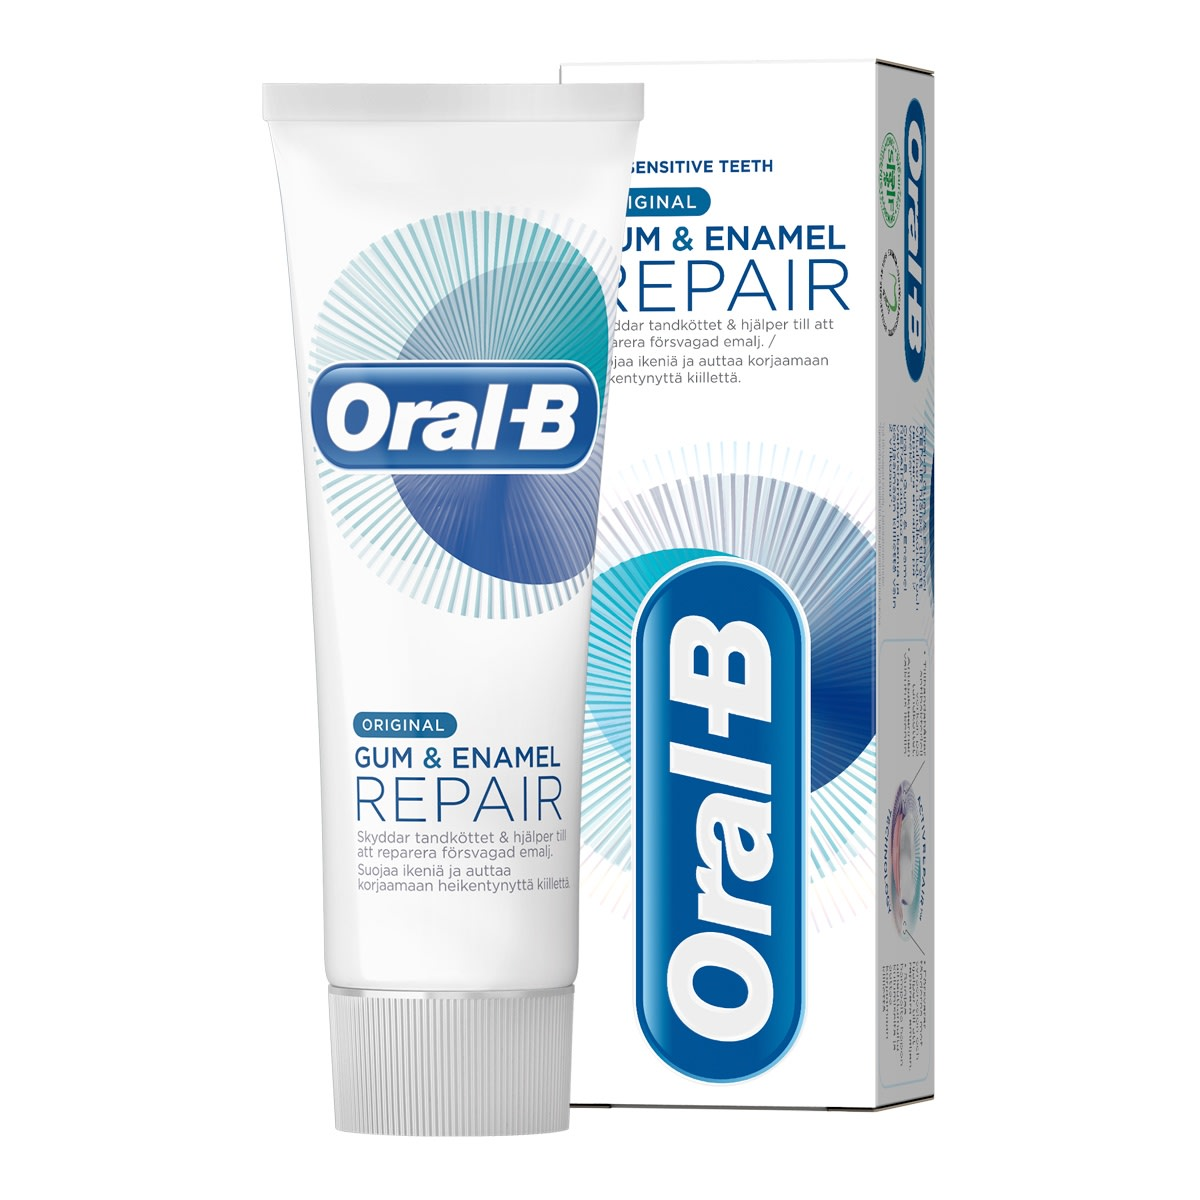 Oral-B Gum & Enamel Repair Original tandkräm